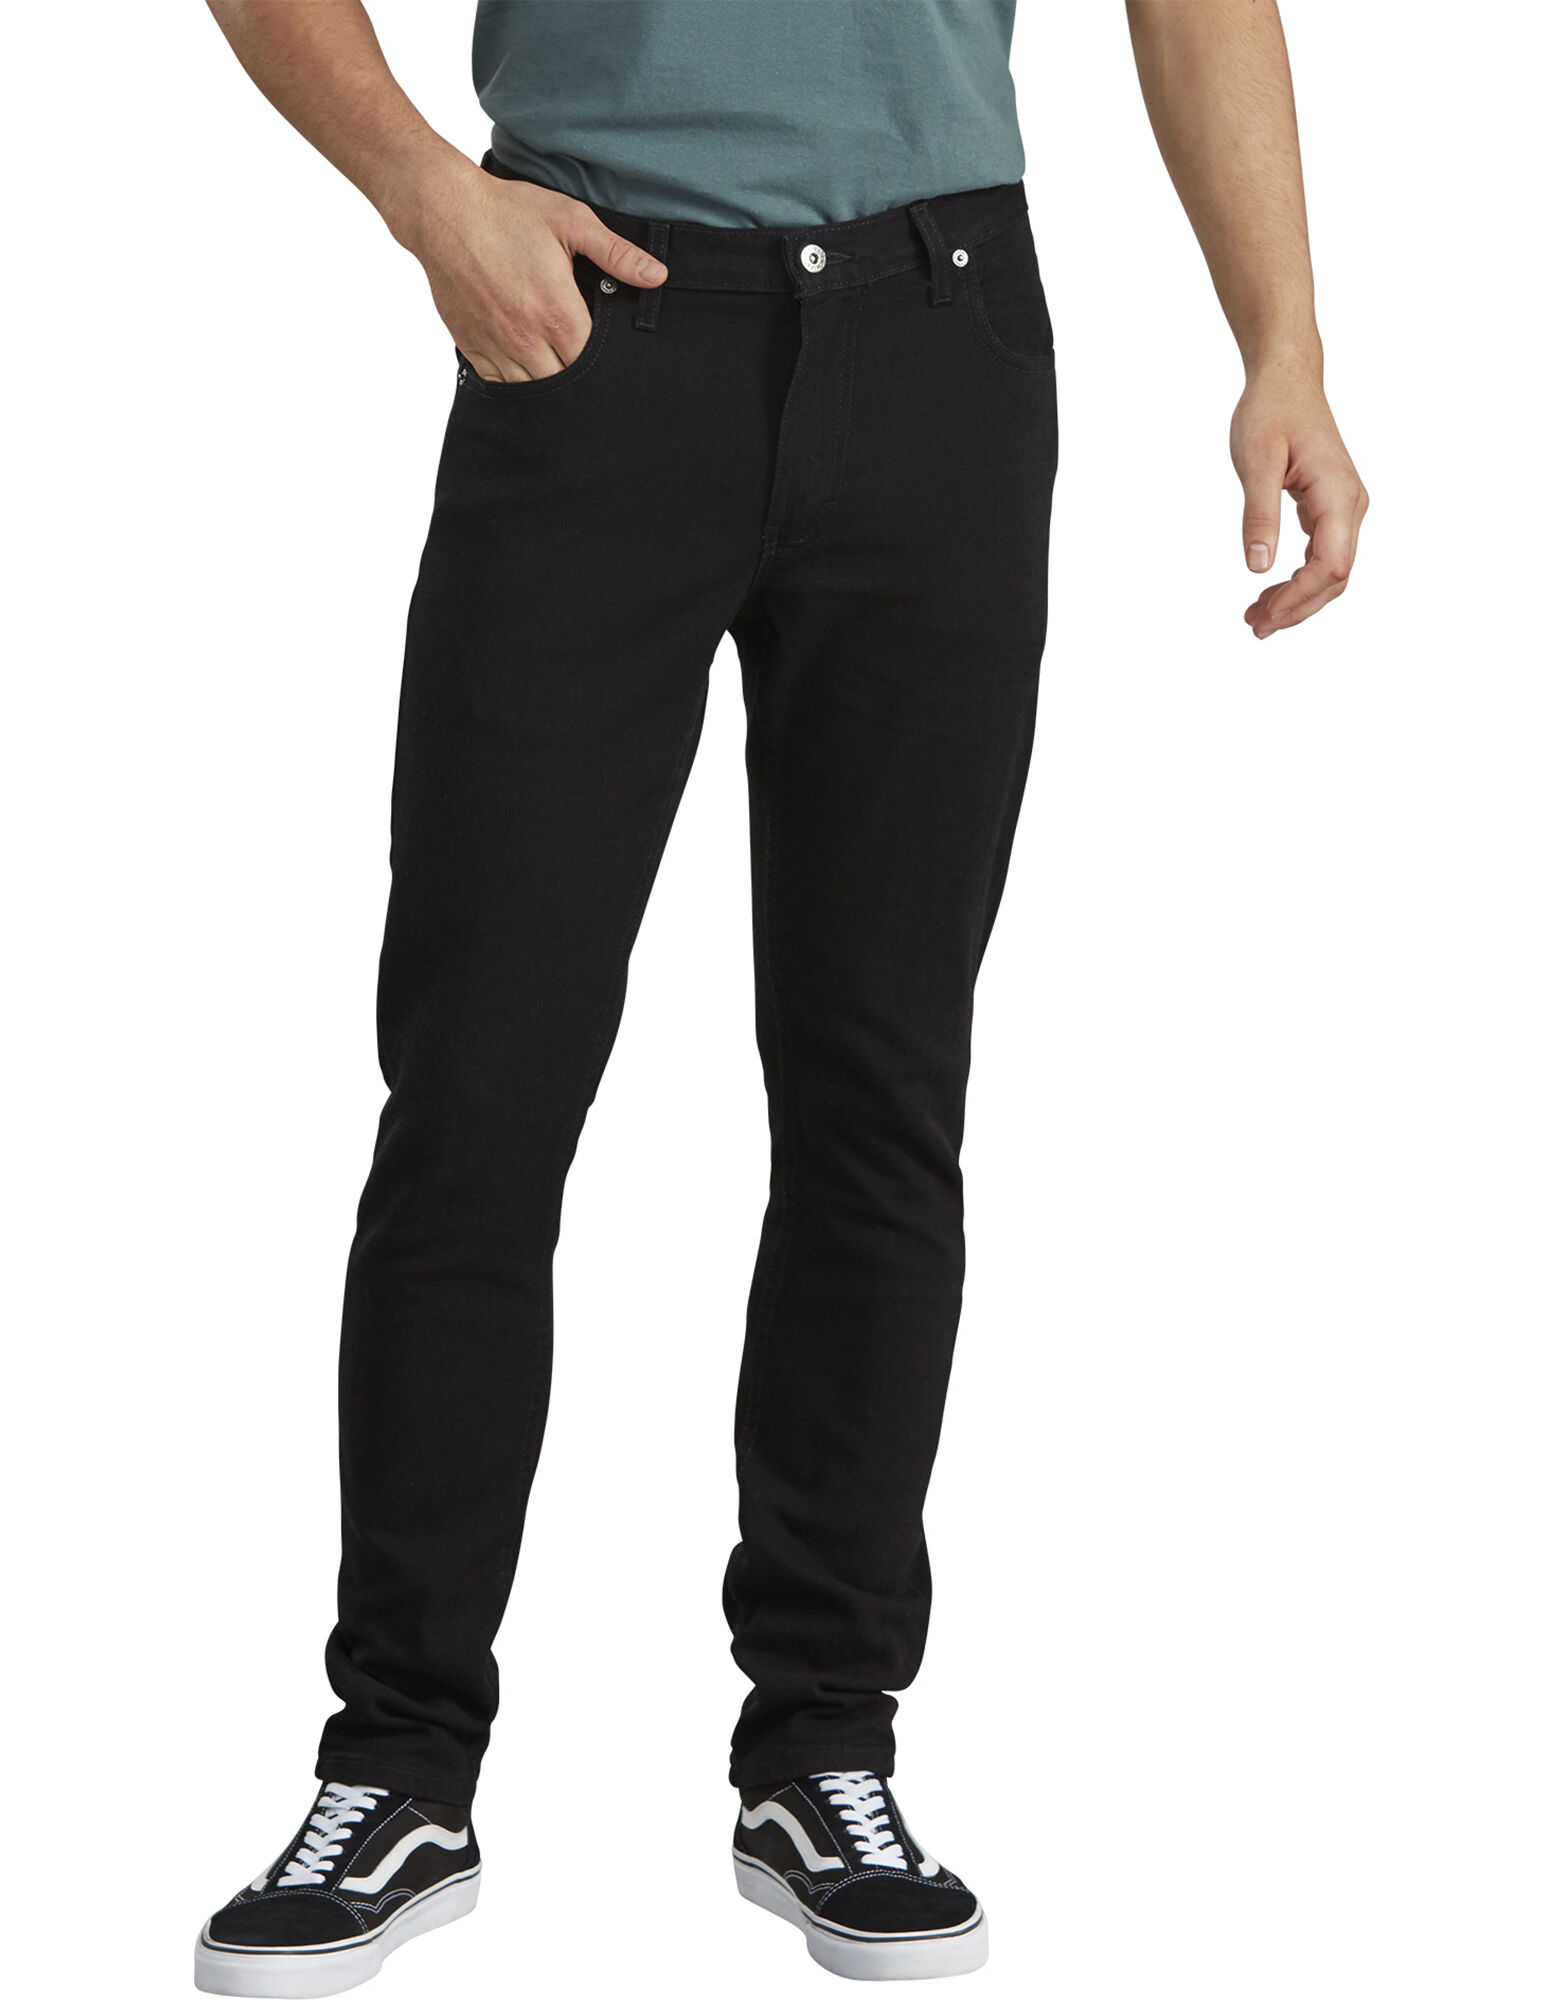 Best Choice Mens Pennsylvania Straight Jeans Dickies Fast Delivery VrlE0i